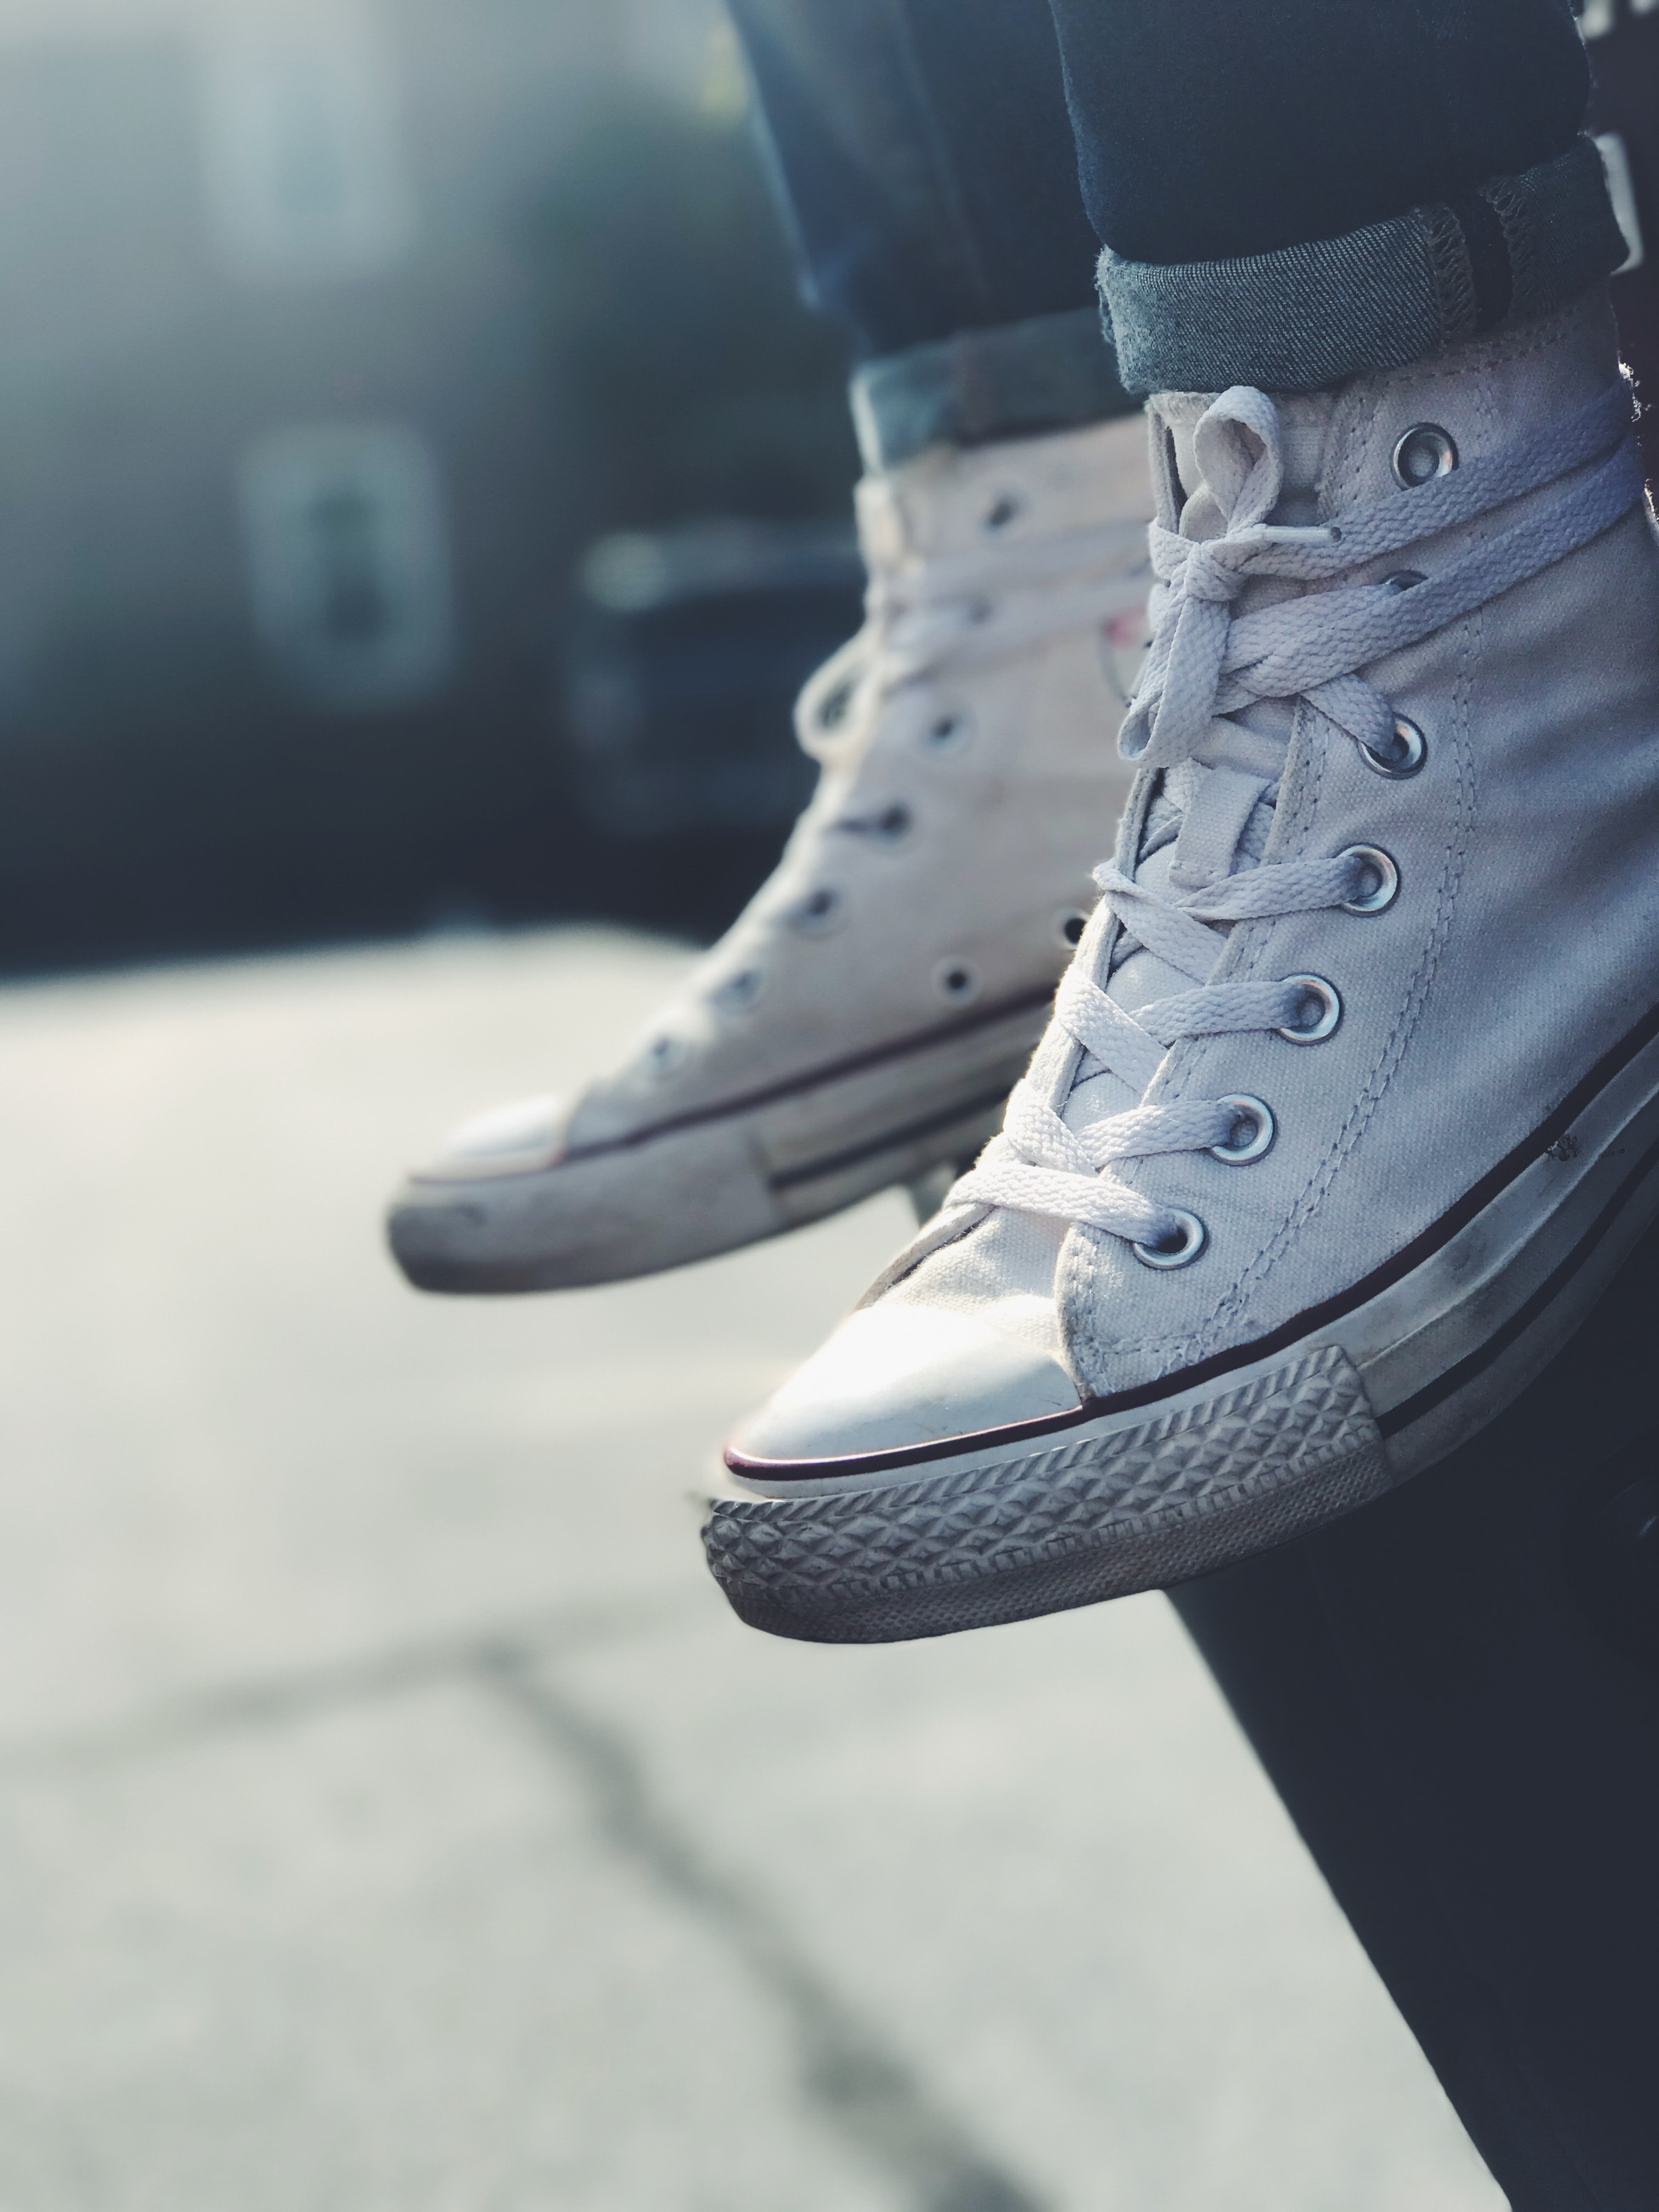 low-angle photography of person wearing white mid-high sneakers